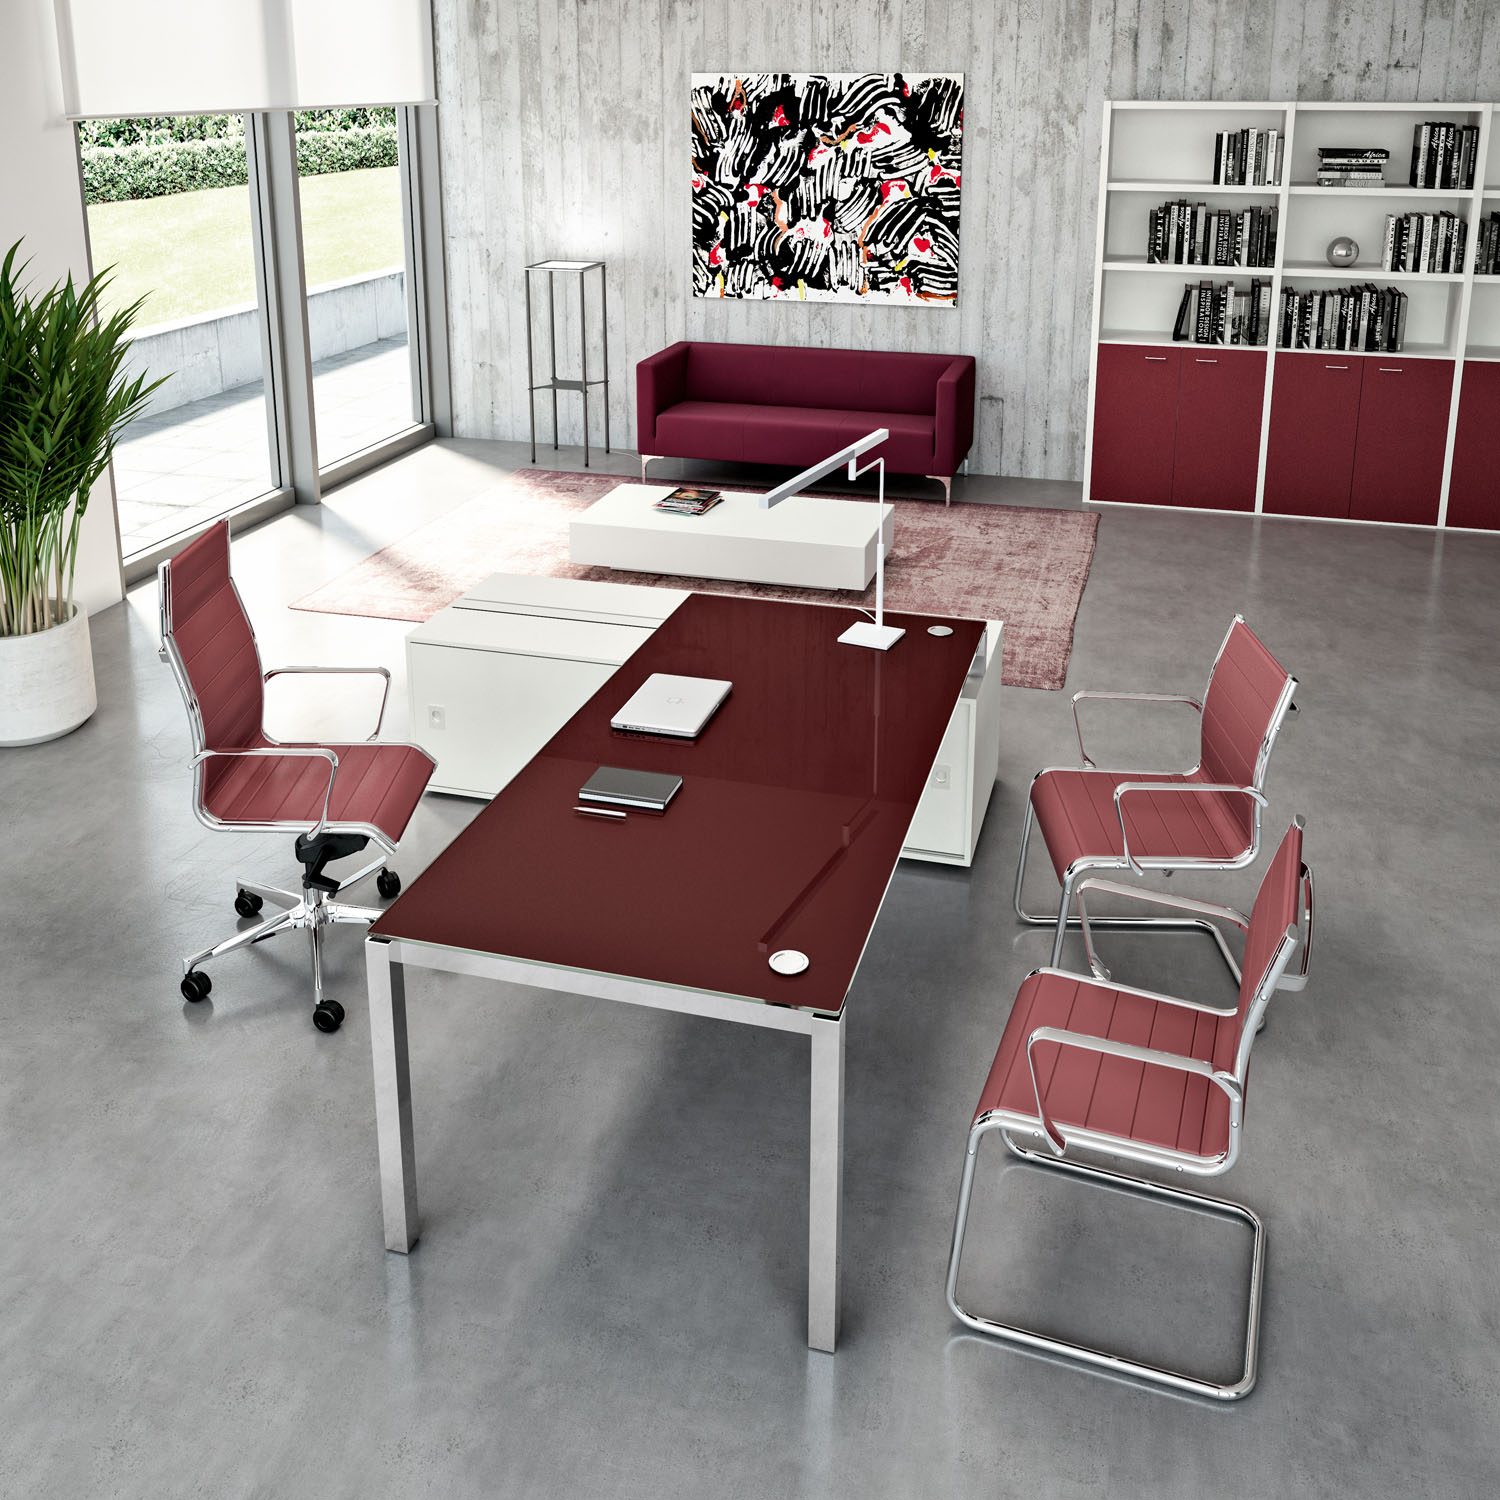 Furnishing An Office Is One Of The Biggest Expenses A Business Faces. Wear  And Tear, Changing Design Trends, And Expanding Needs Can Put A Major Crimp  In ...